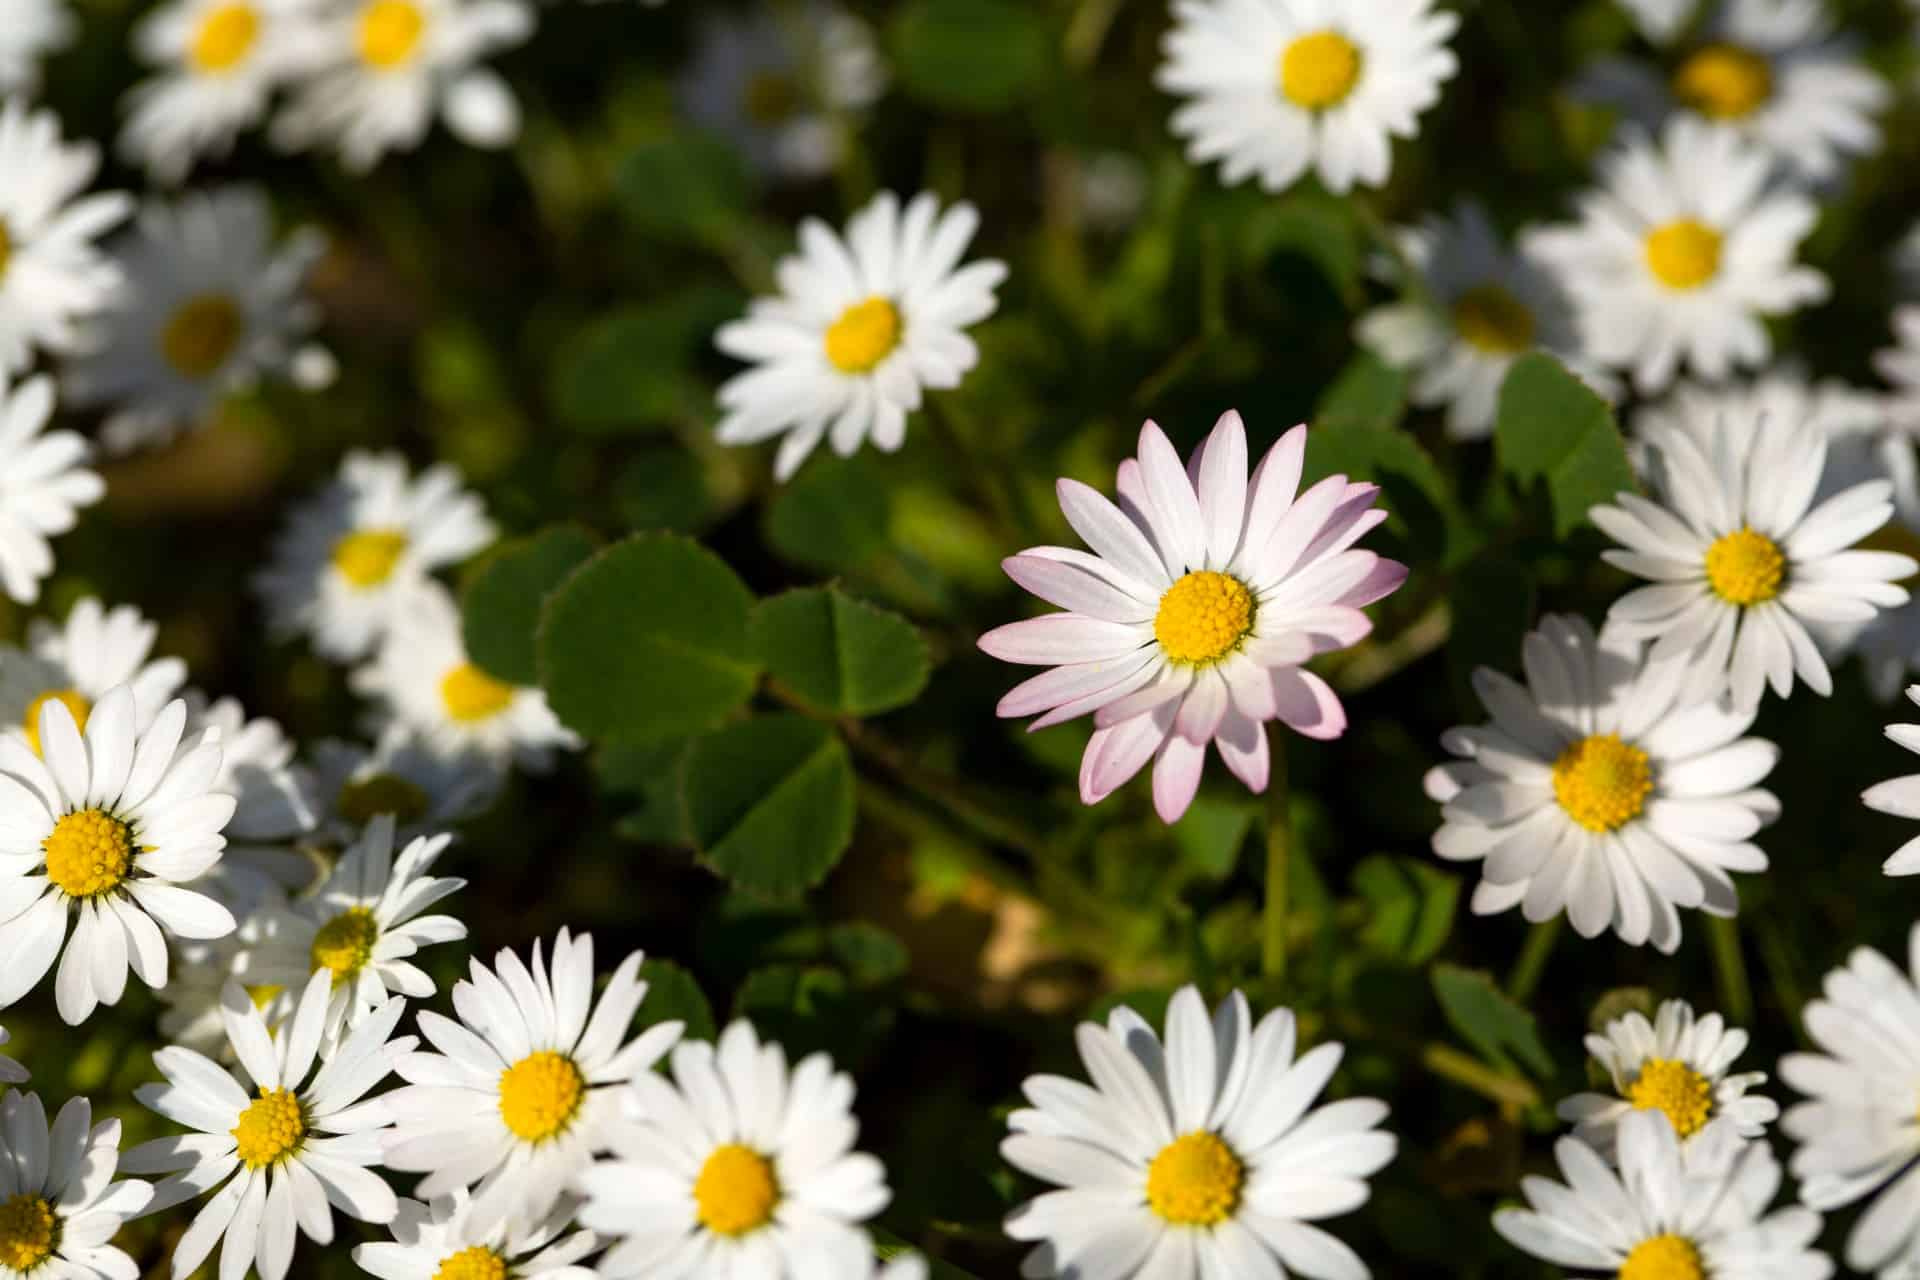 The common daisy is both easy to grow and long-blooming.